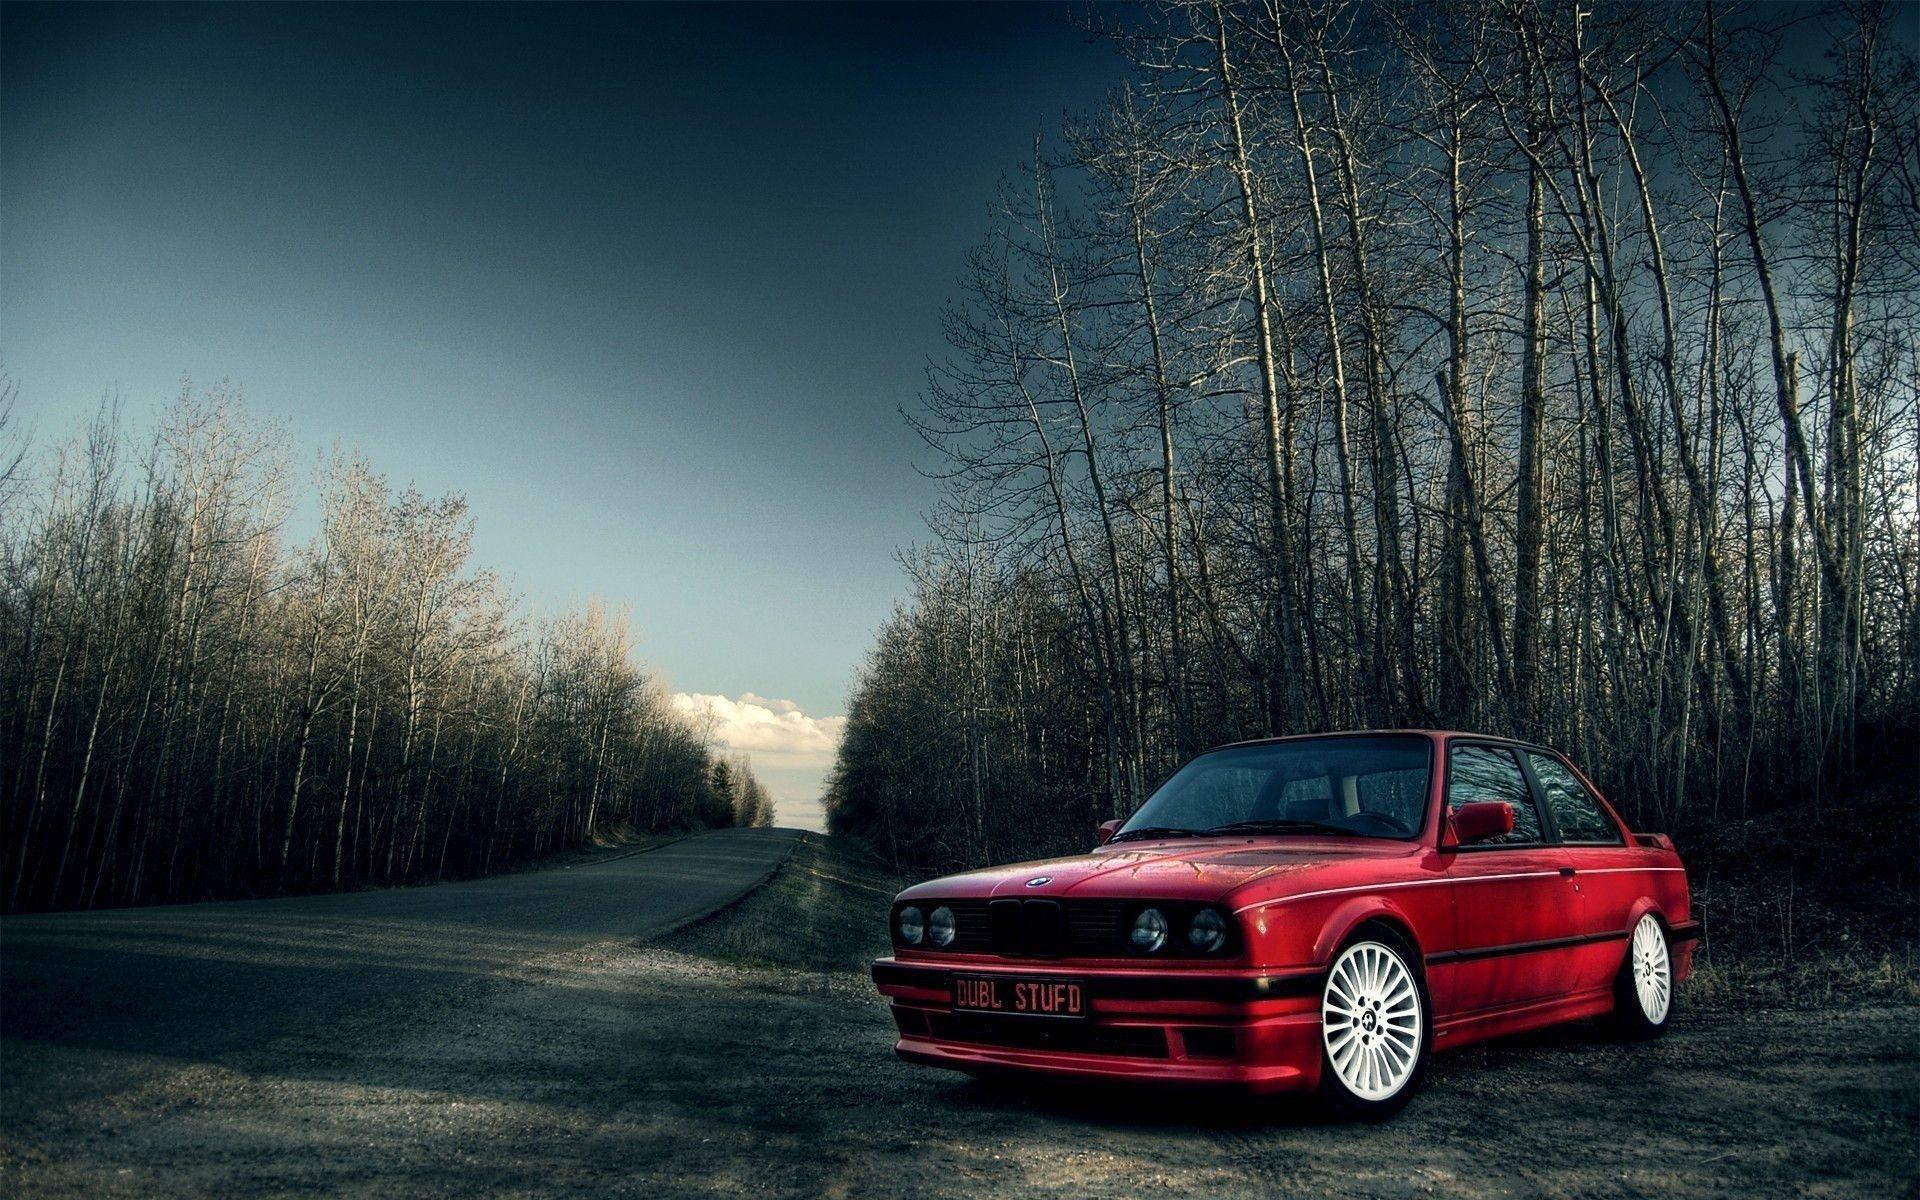 Bmw E30 Wallpapers Wallpaper Cave